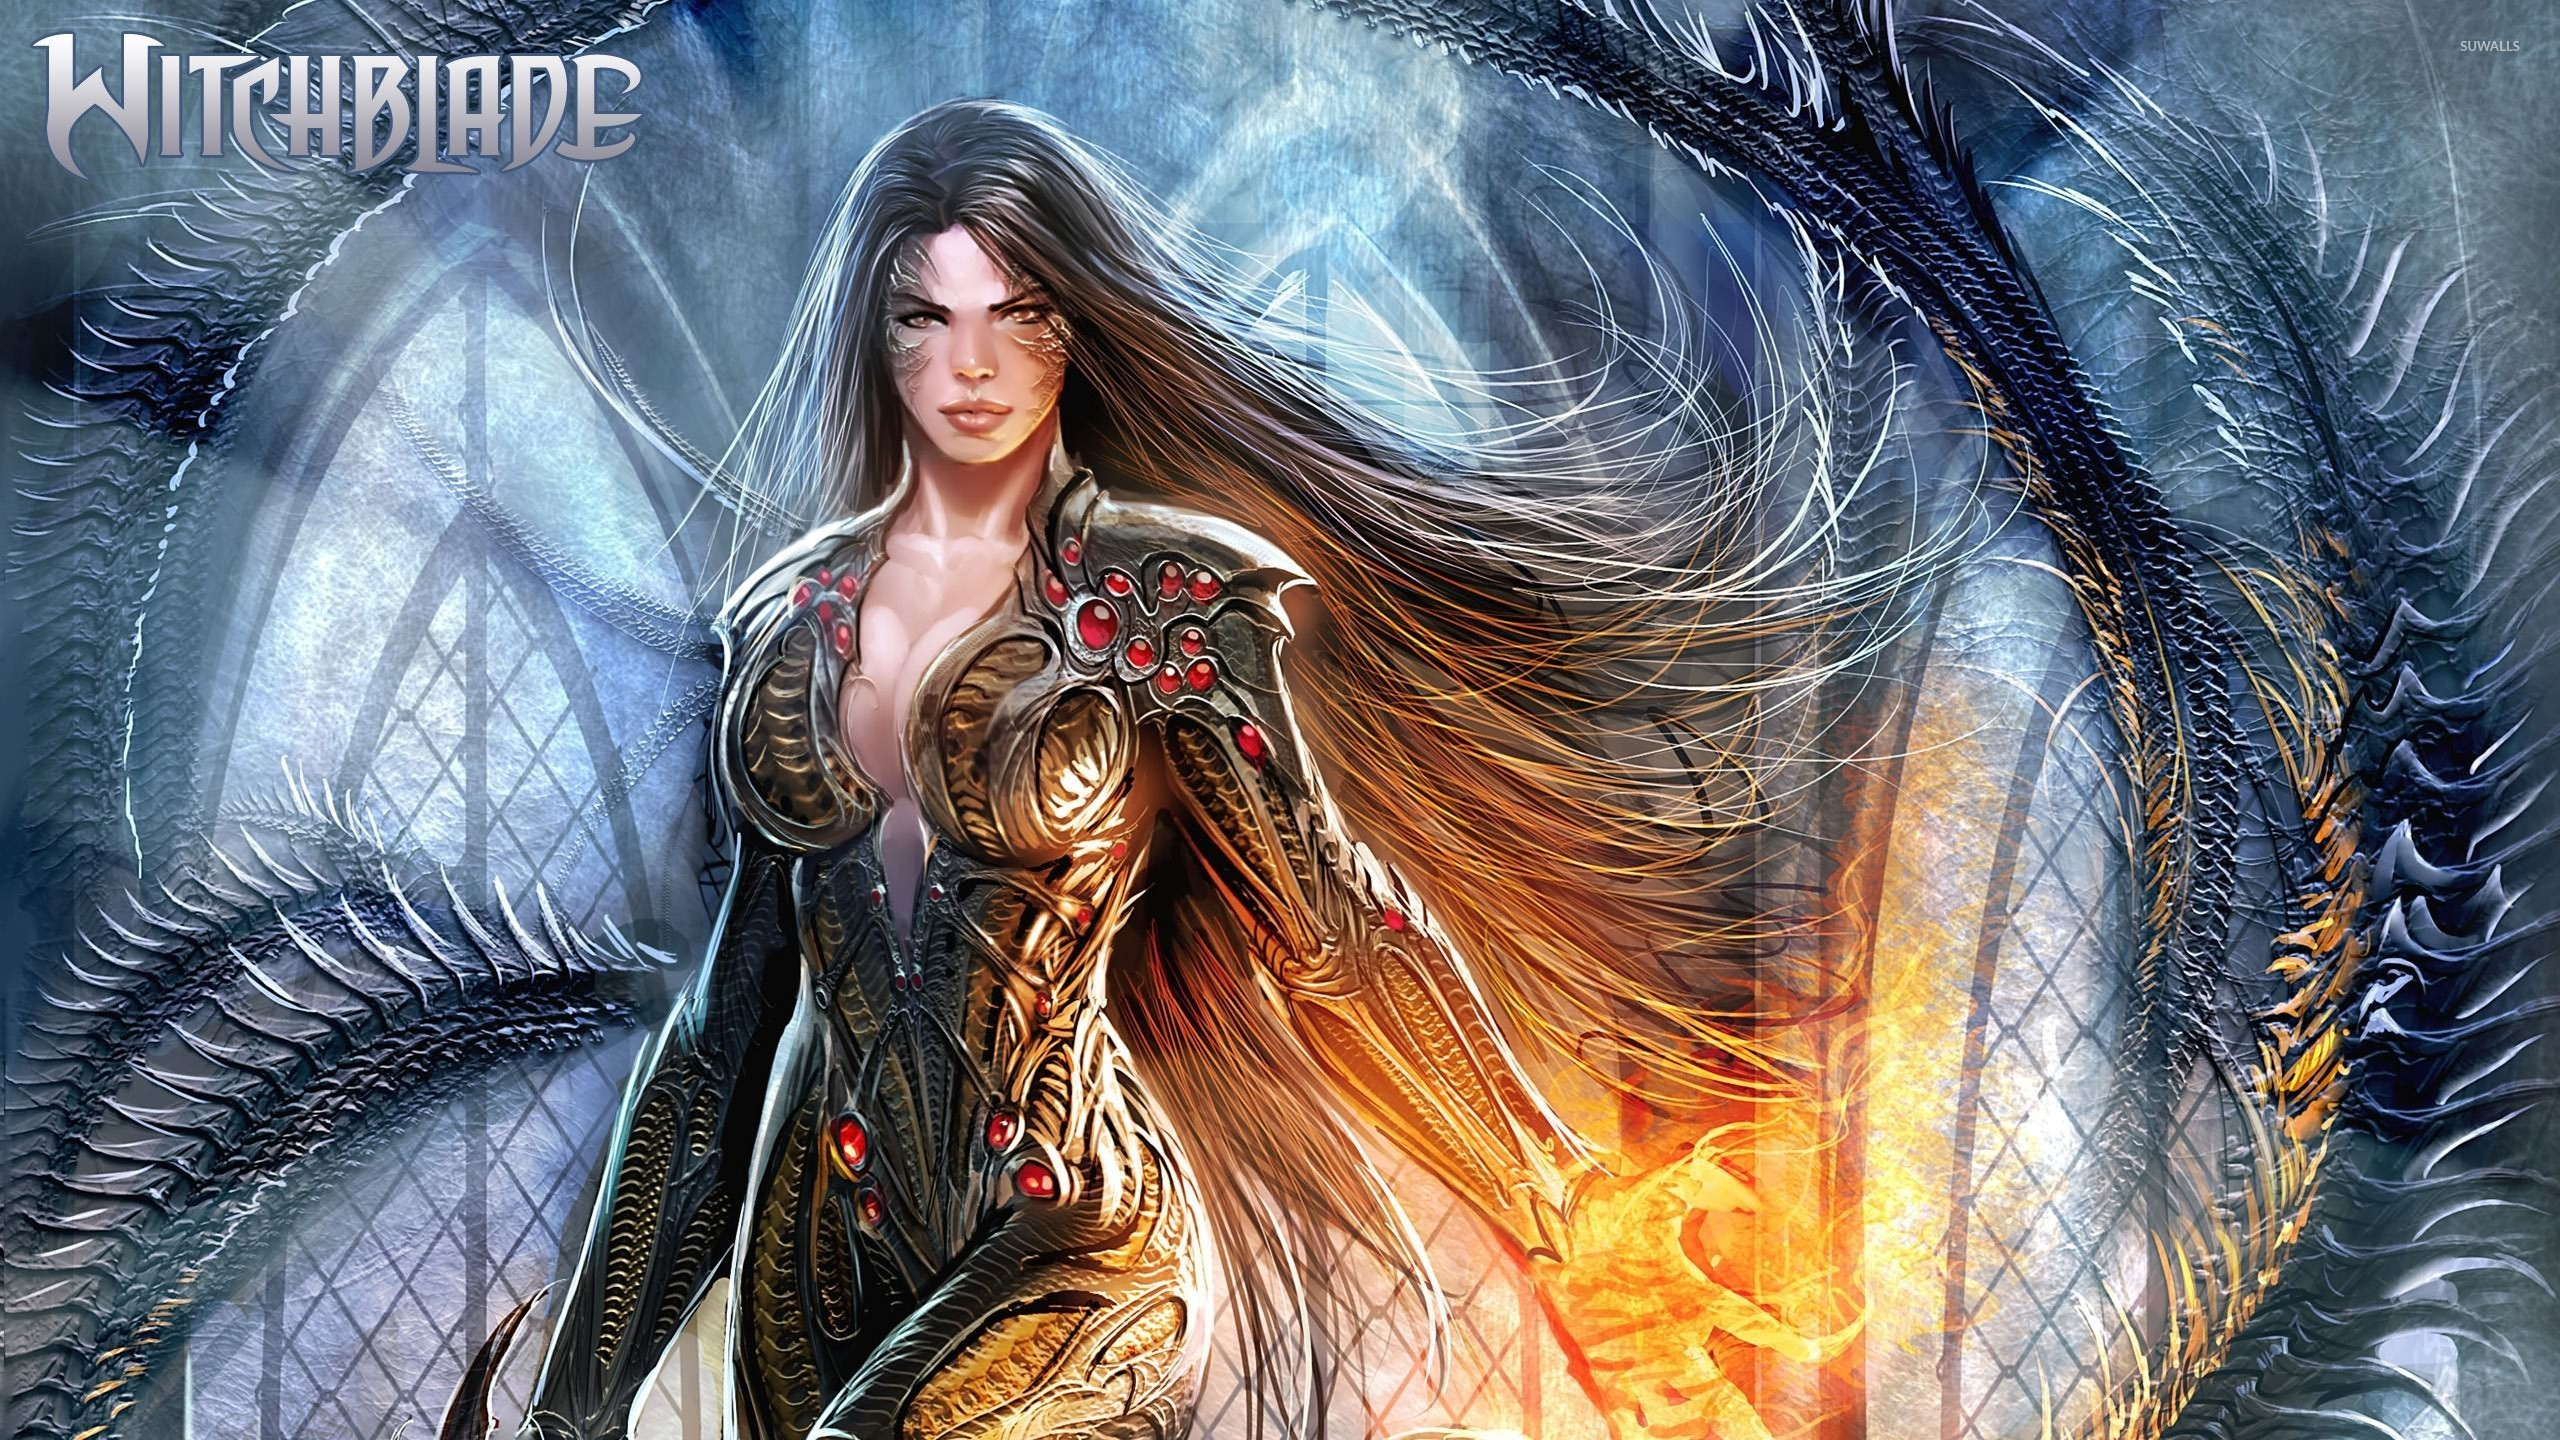 Amazing Witchblade 52790 2560×1440 Wallpaper